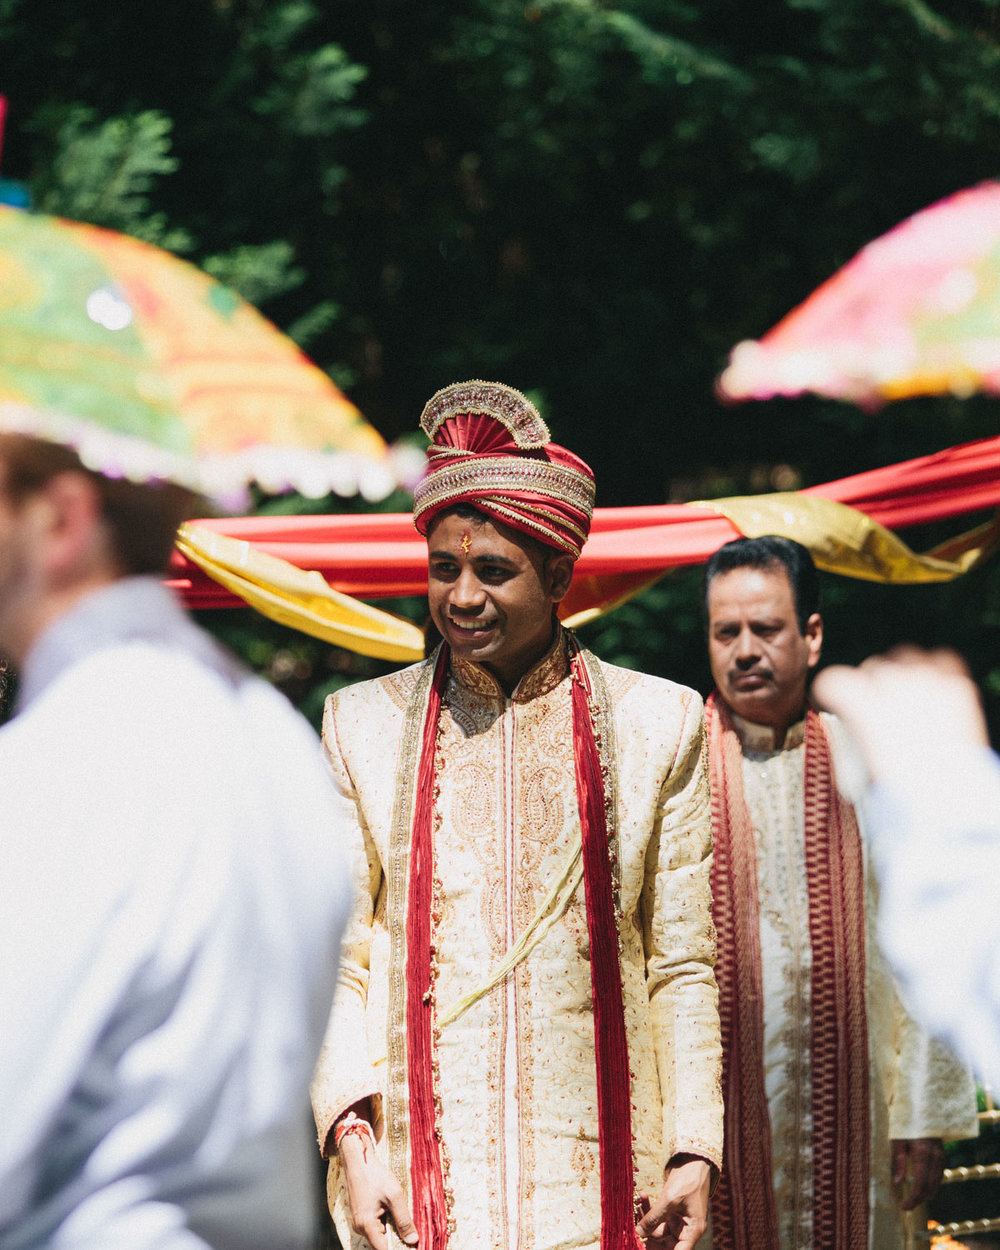 backyard_indian_wedding_roswell_atlanta_georgia_wedding_photographers-219.jpg